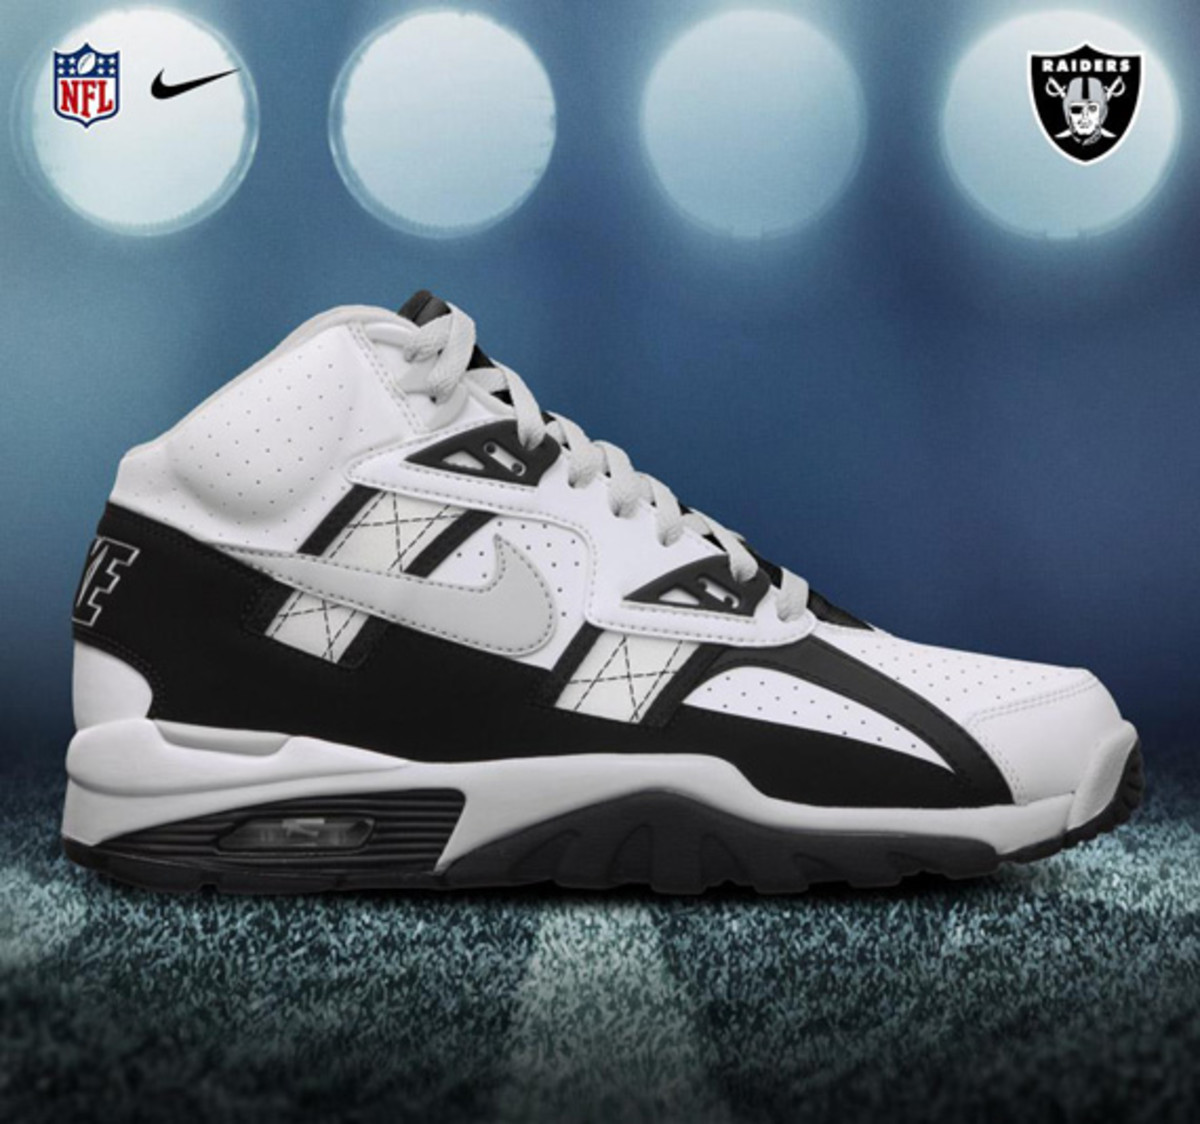 nike-football-Air-Trainer-SC-NFL-2012-nfl-draft-pack-oakland-raiders-00